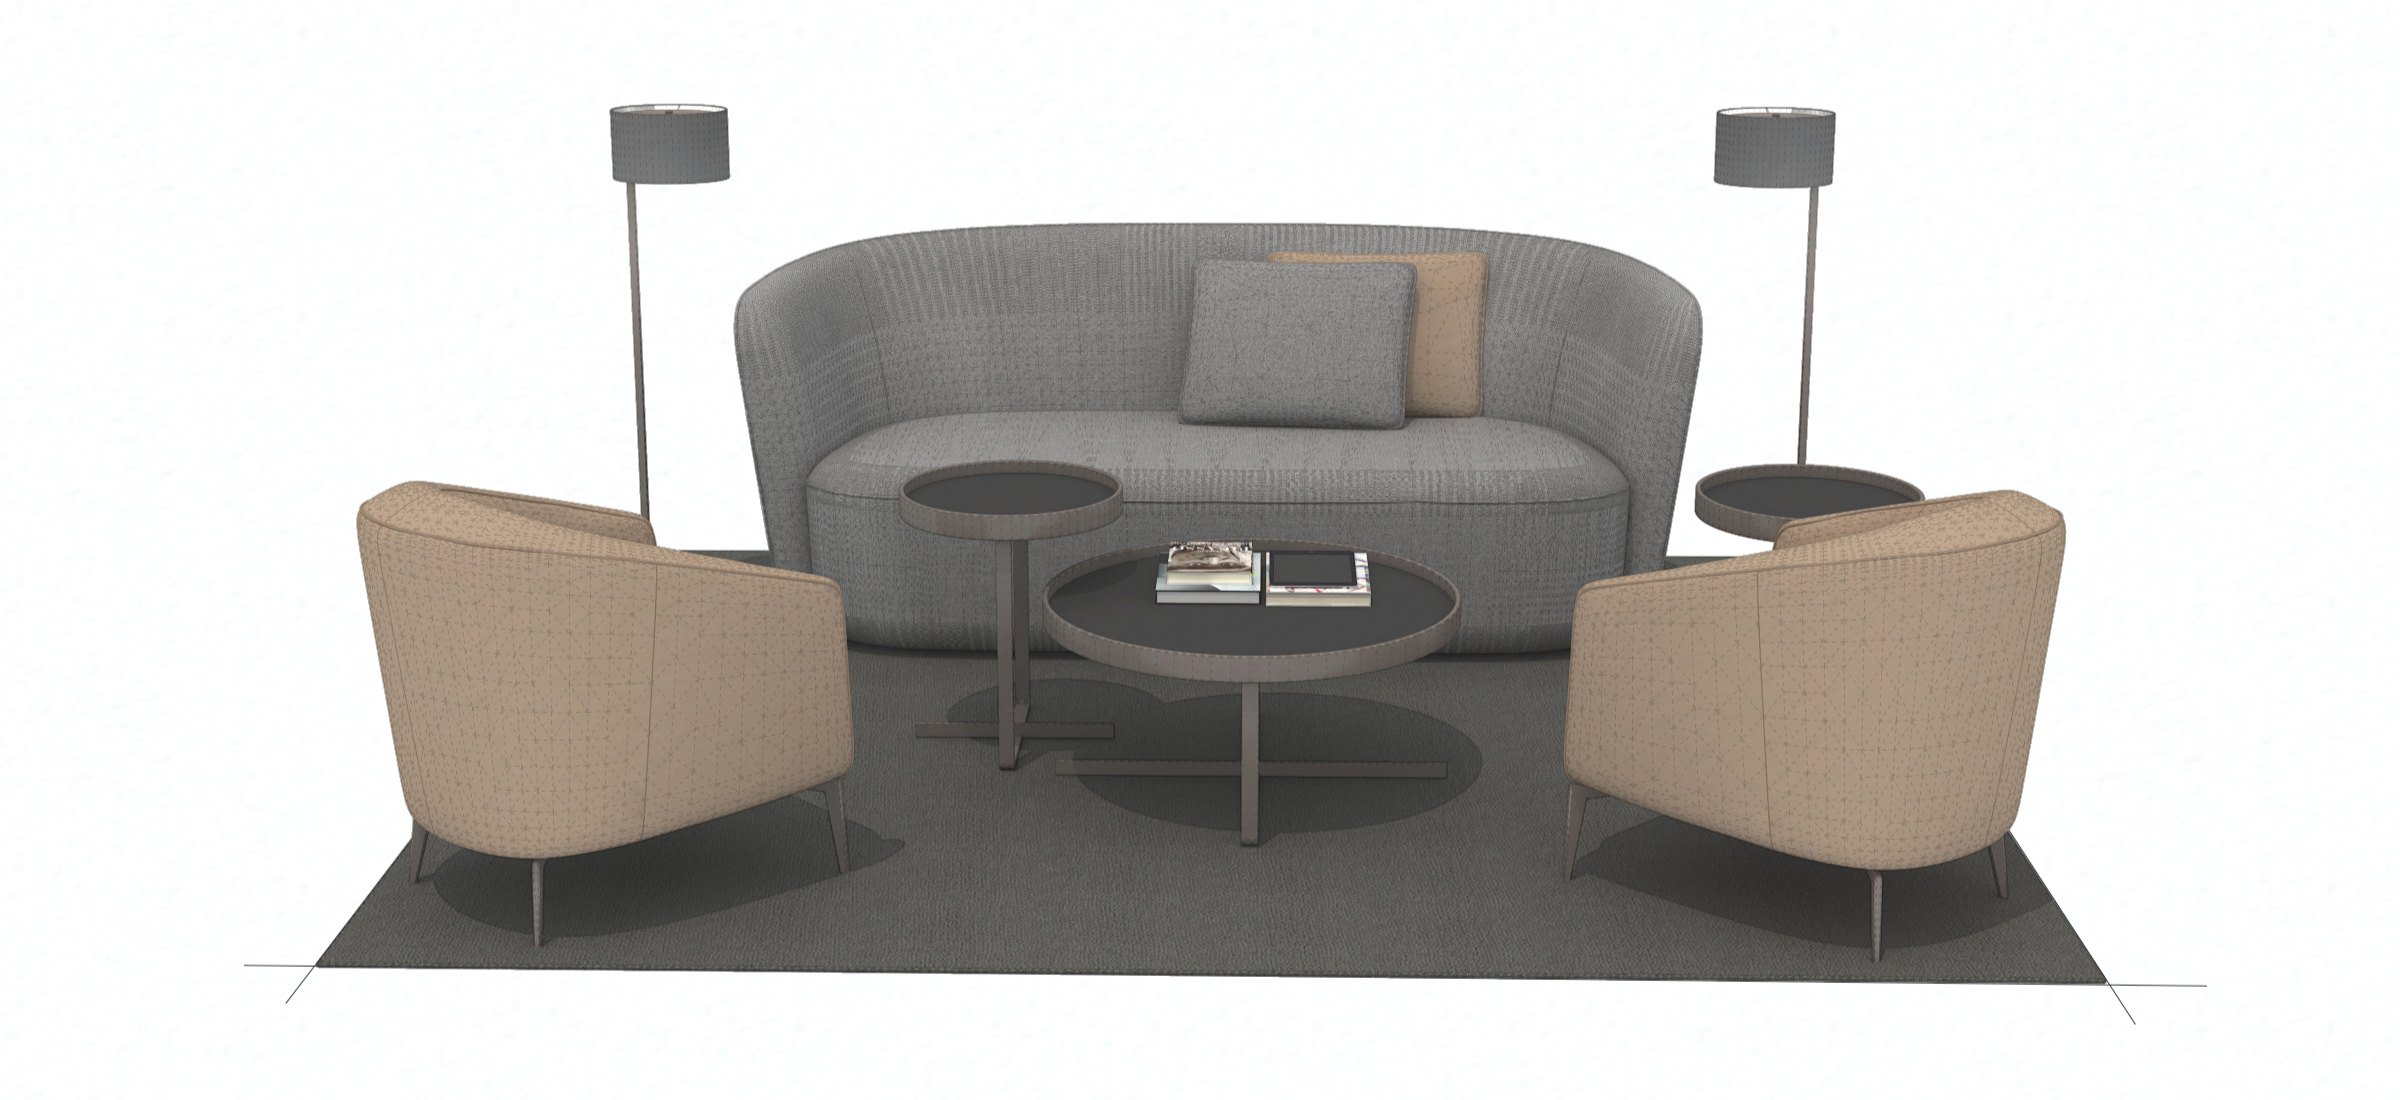 3D Furniture Modeling Services for Furniture Brands